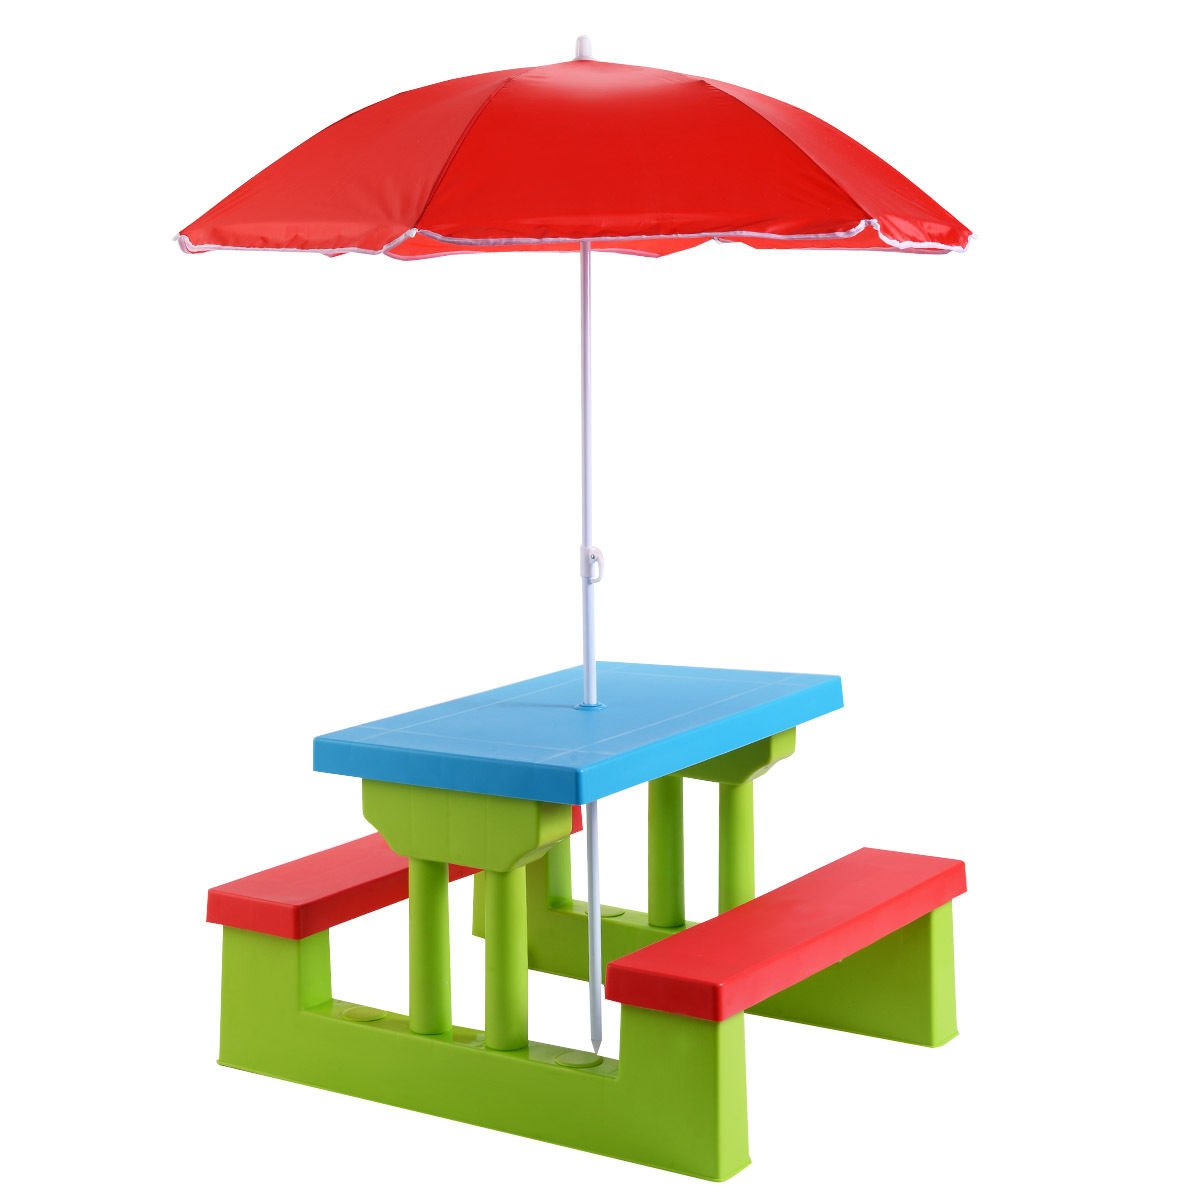 Globe House Products GHP Red Blue Green PP Indoor Outdoor Portable 4-Seat Kids Picnic Table with Umbrella